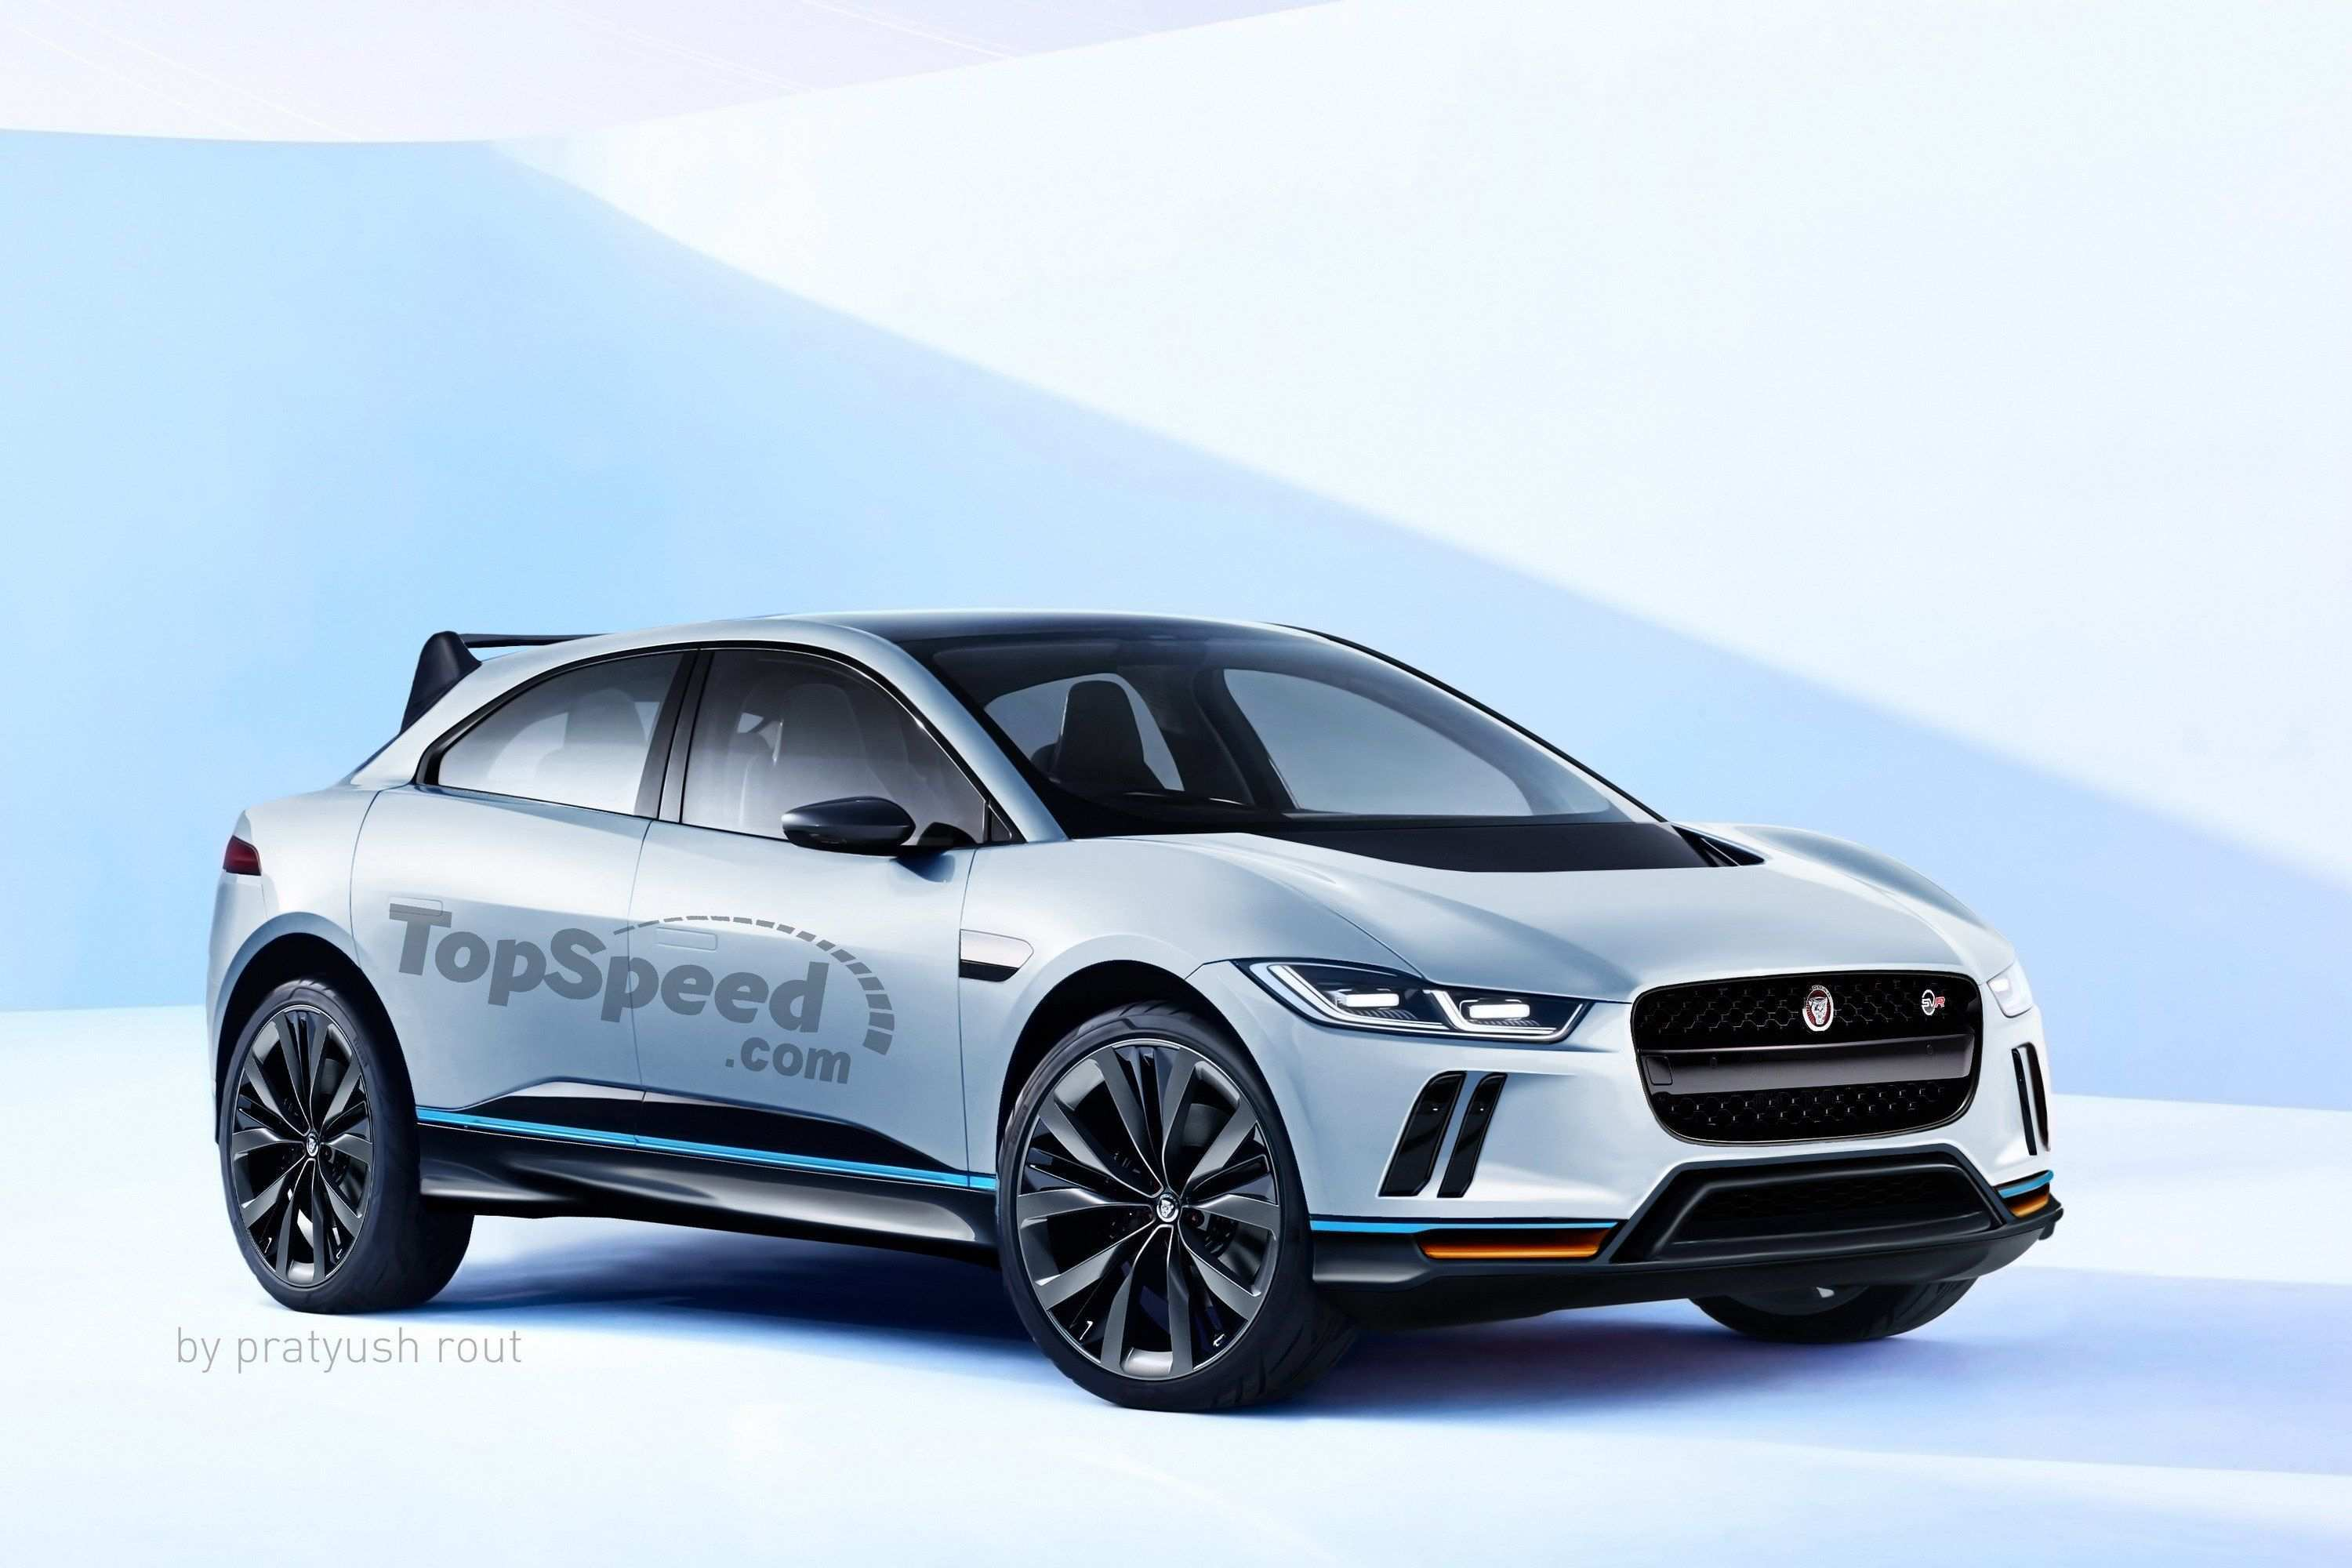 71 All New 2020 Jaguar I Pace First Edition New Review with 2020 Jaguar I Pace First Edition